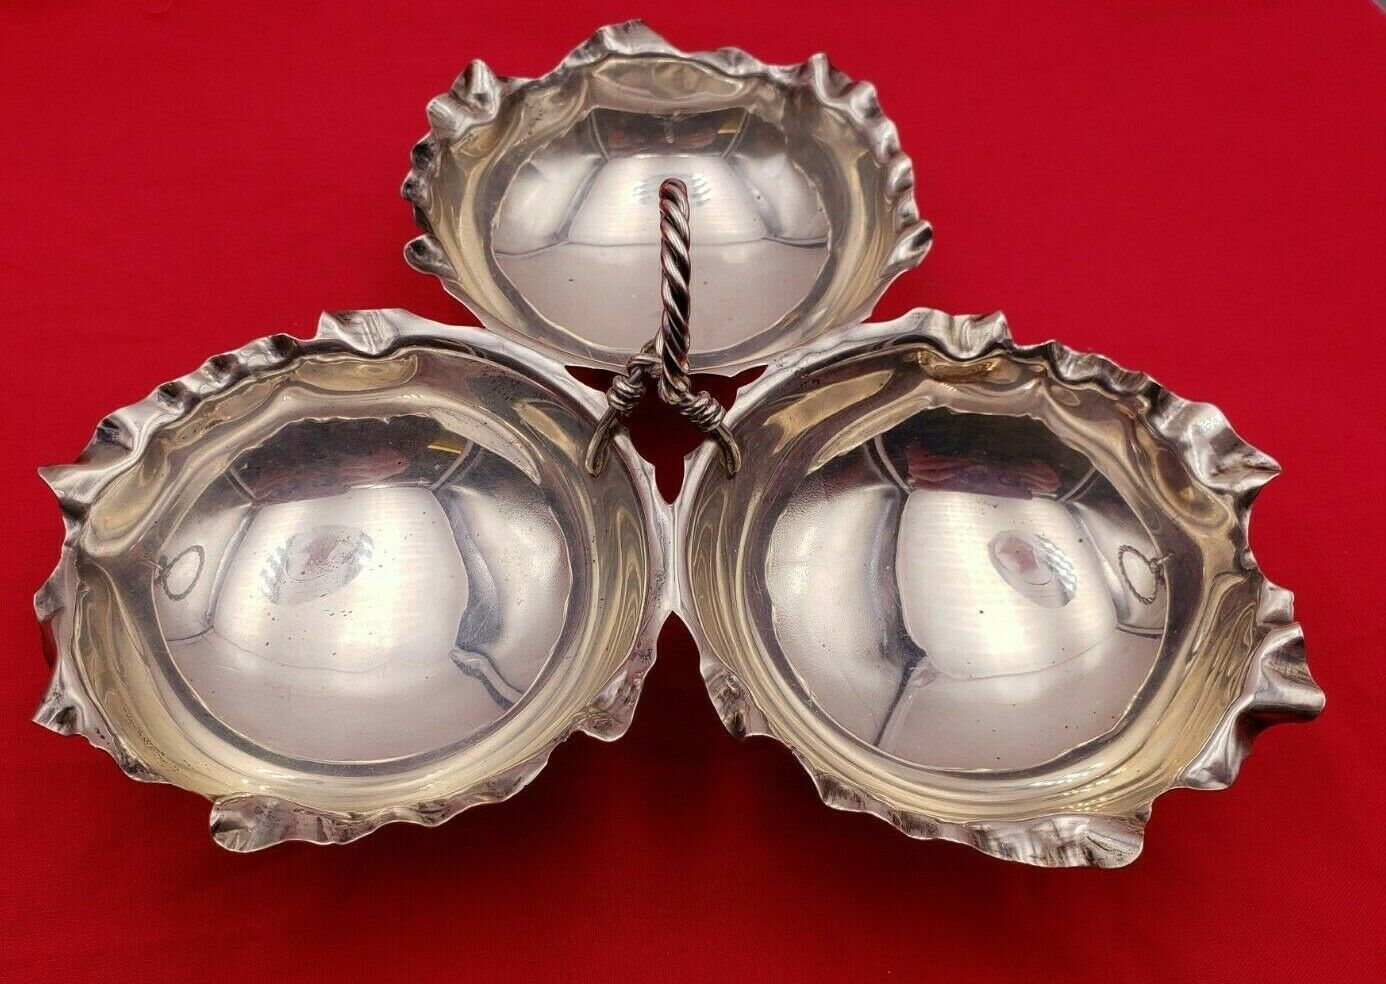 Unique Vintage Sterling Silver 3 Part Candy Dish w/ Scalloped Edge #6747